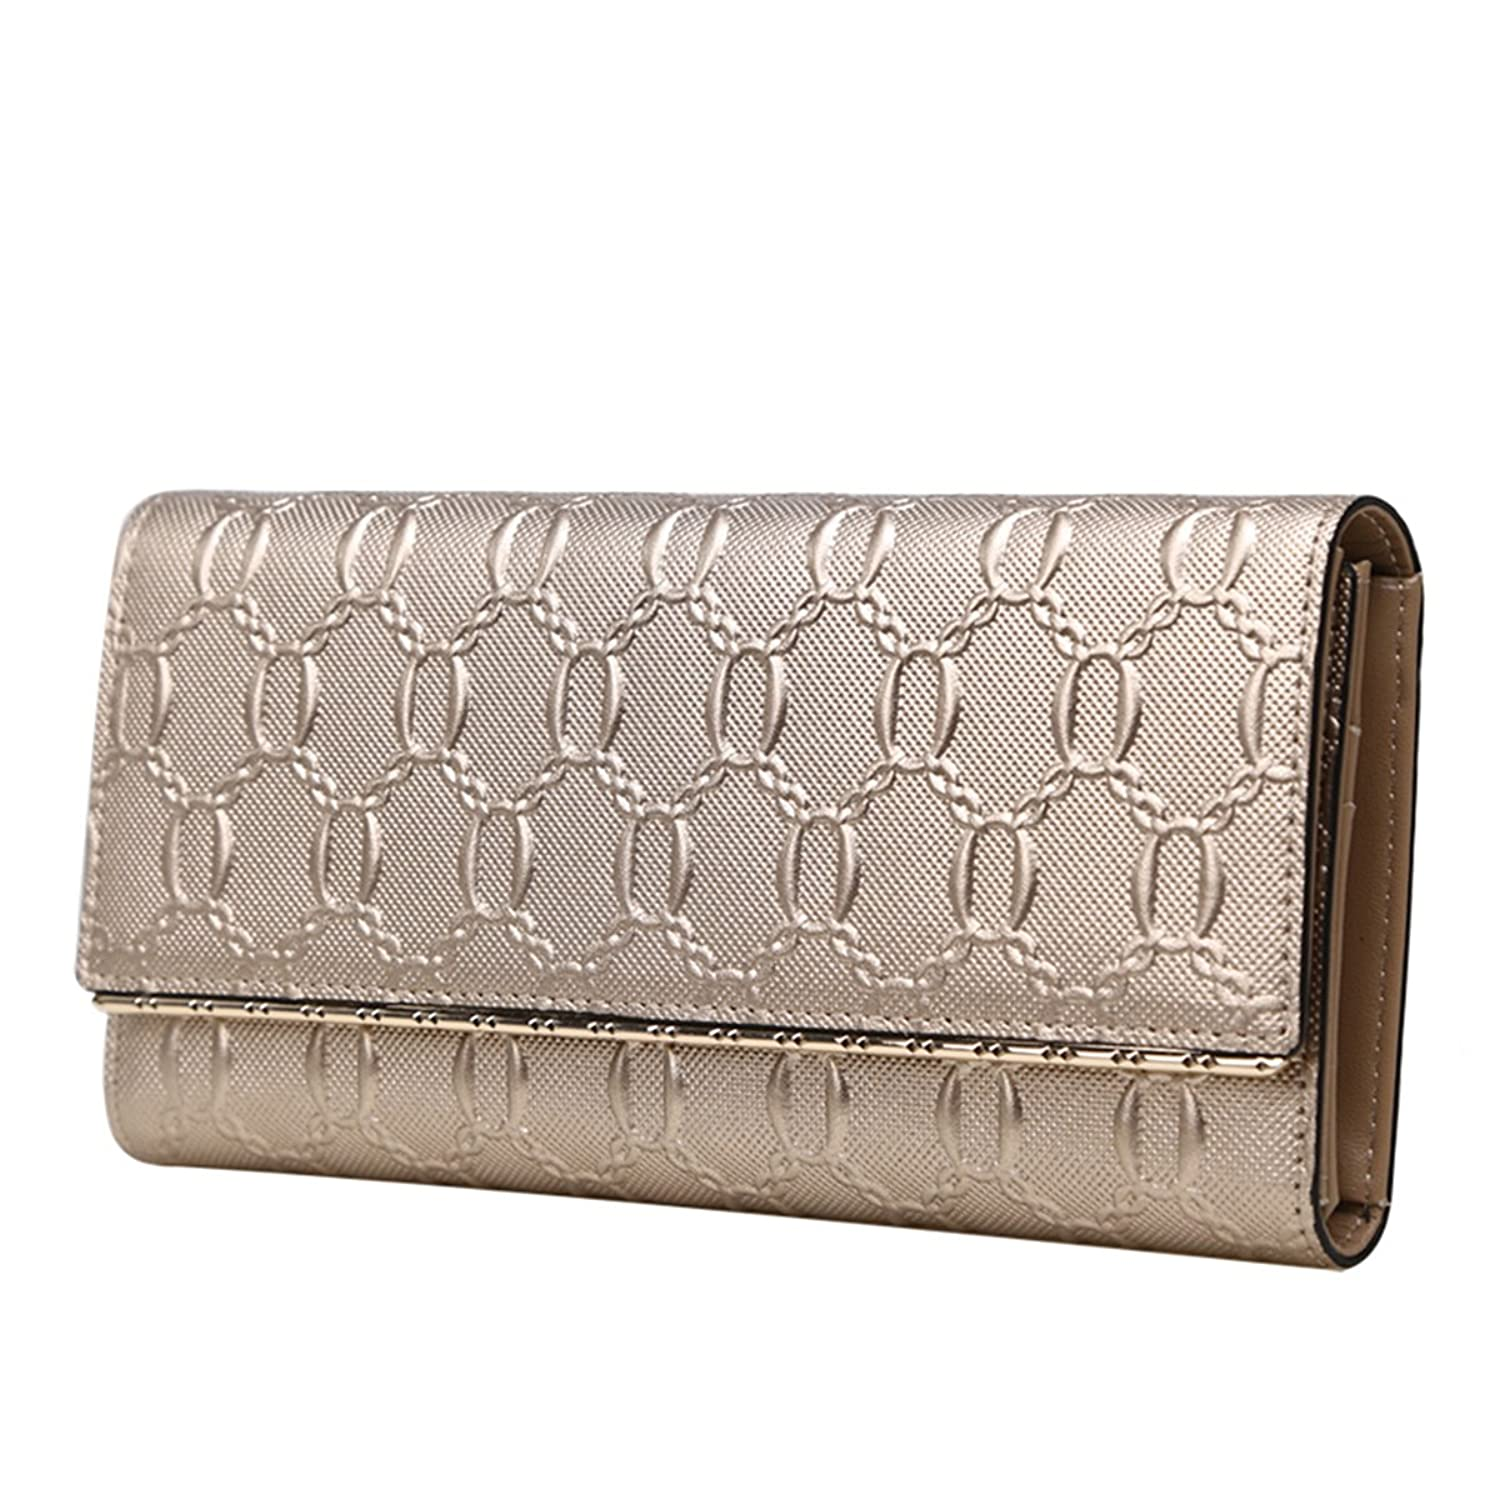 MATAGA Women Wallets Genuine Leather Clutch Card Holder Long Purse for Women Trifold JHFX241020